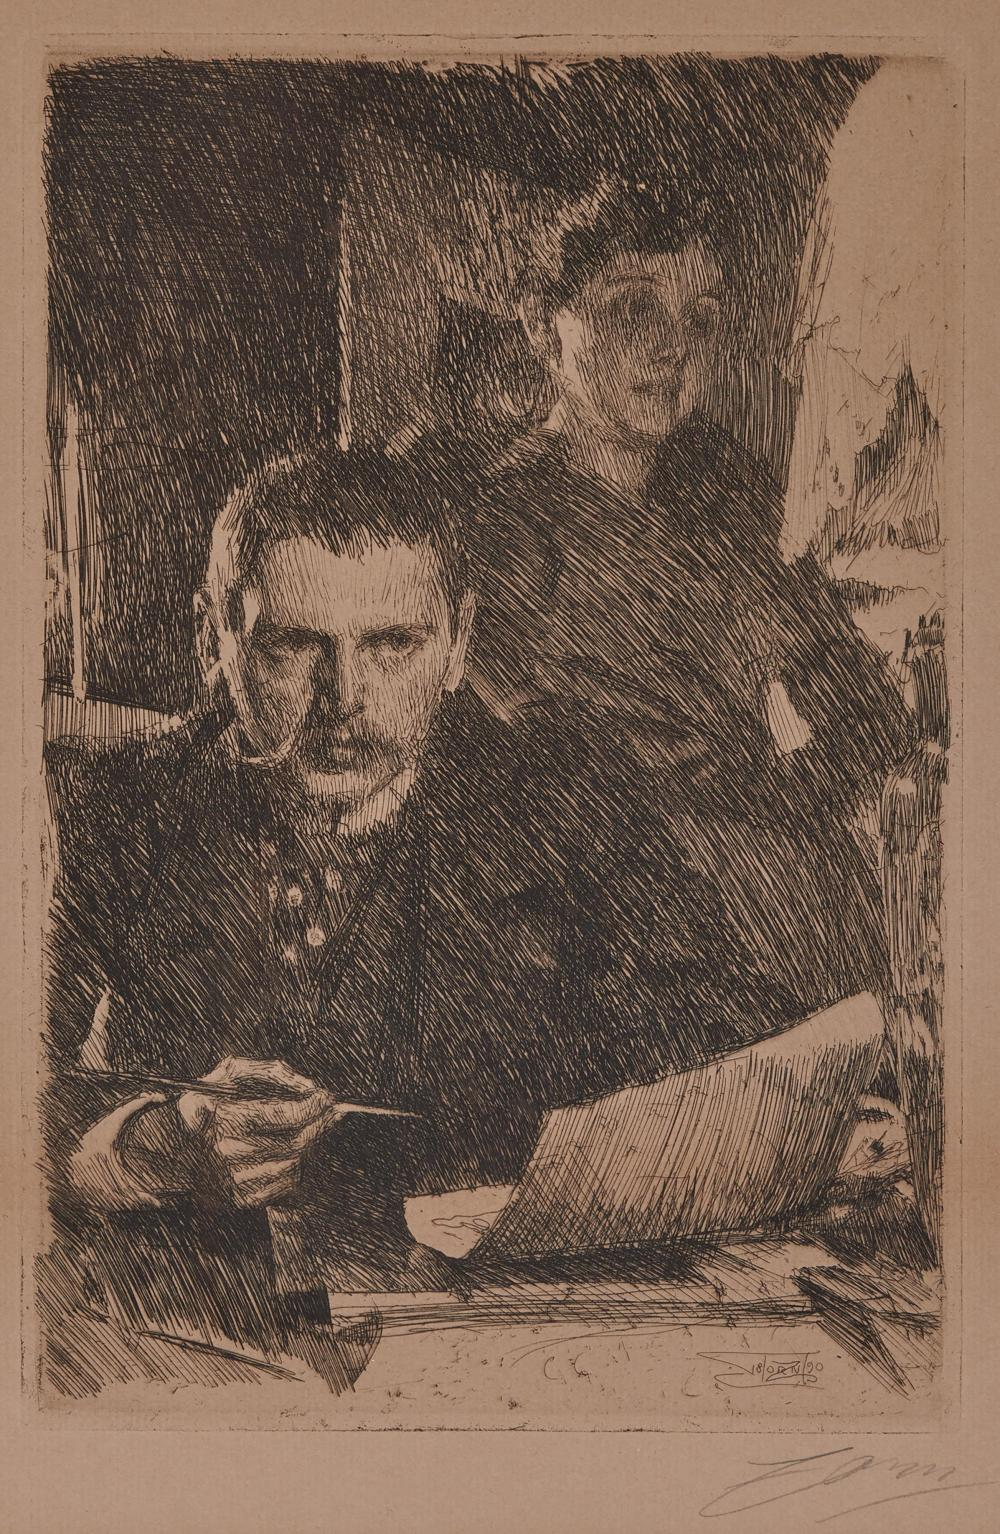 ANDERS ZORN, (Swedish, 1860-1920), Zorn and His Wife, 1890, etching on paper, sight: 14 1/2 x 10 1/4 in., frame: 22 1/4 x 17 7/8 in.